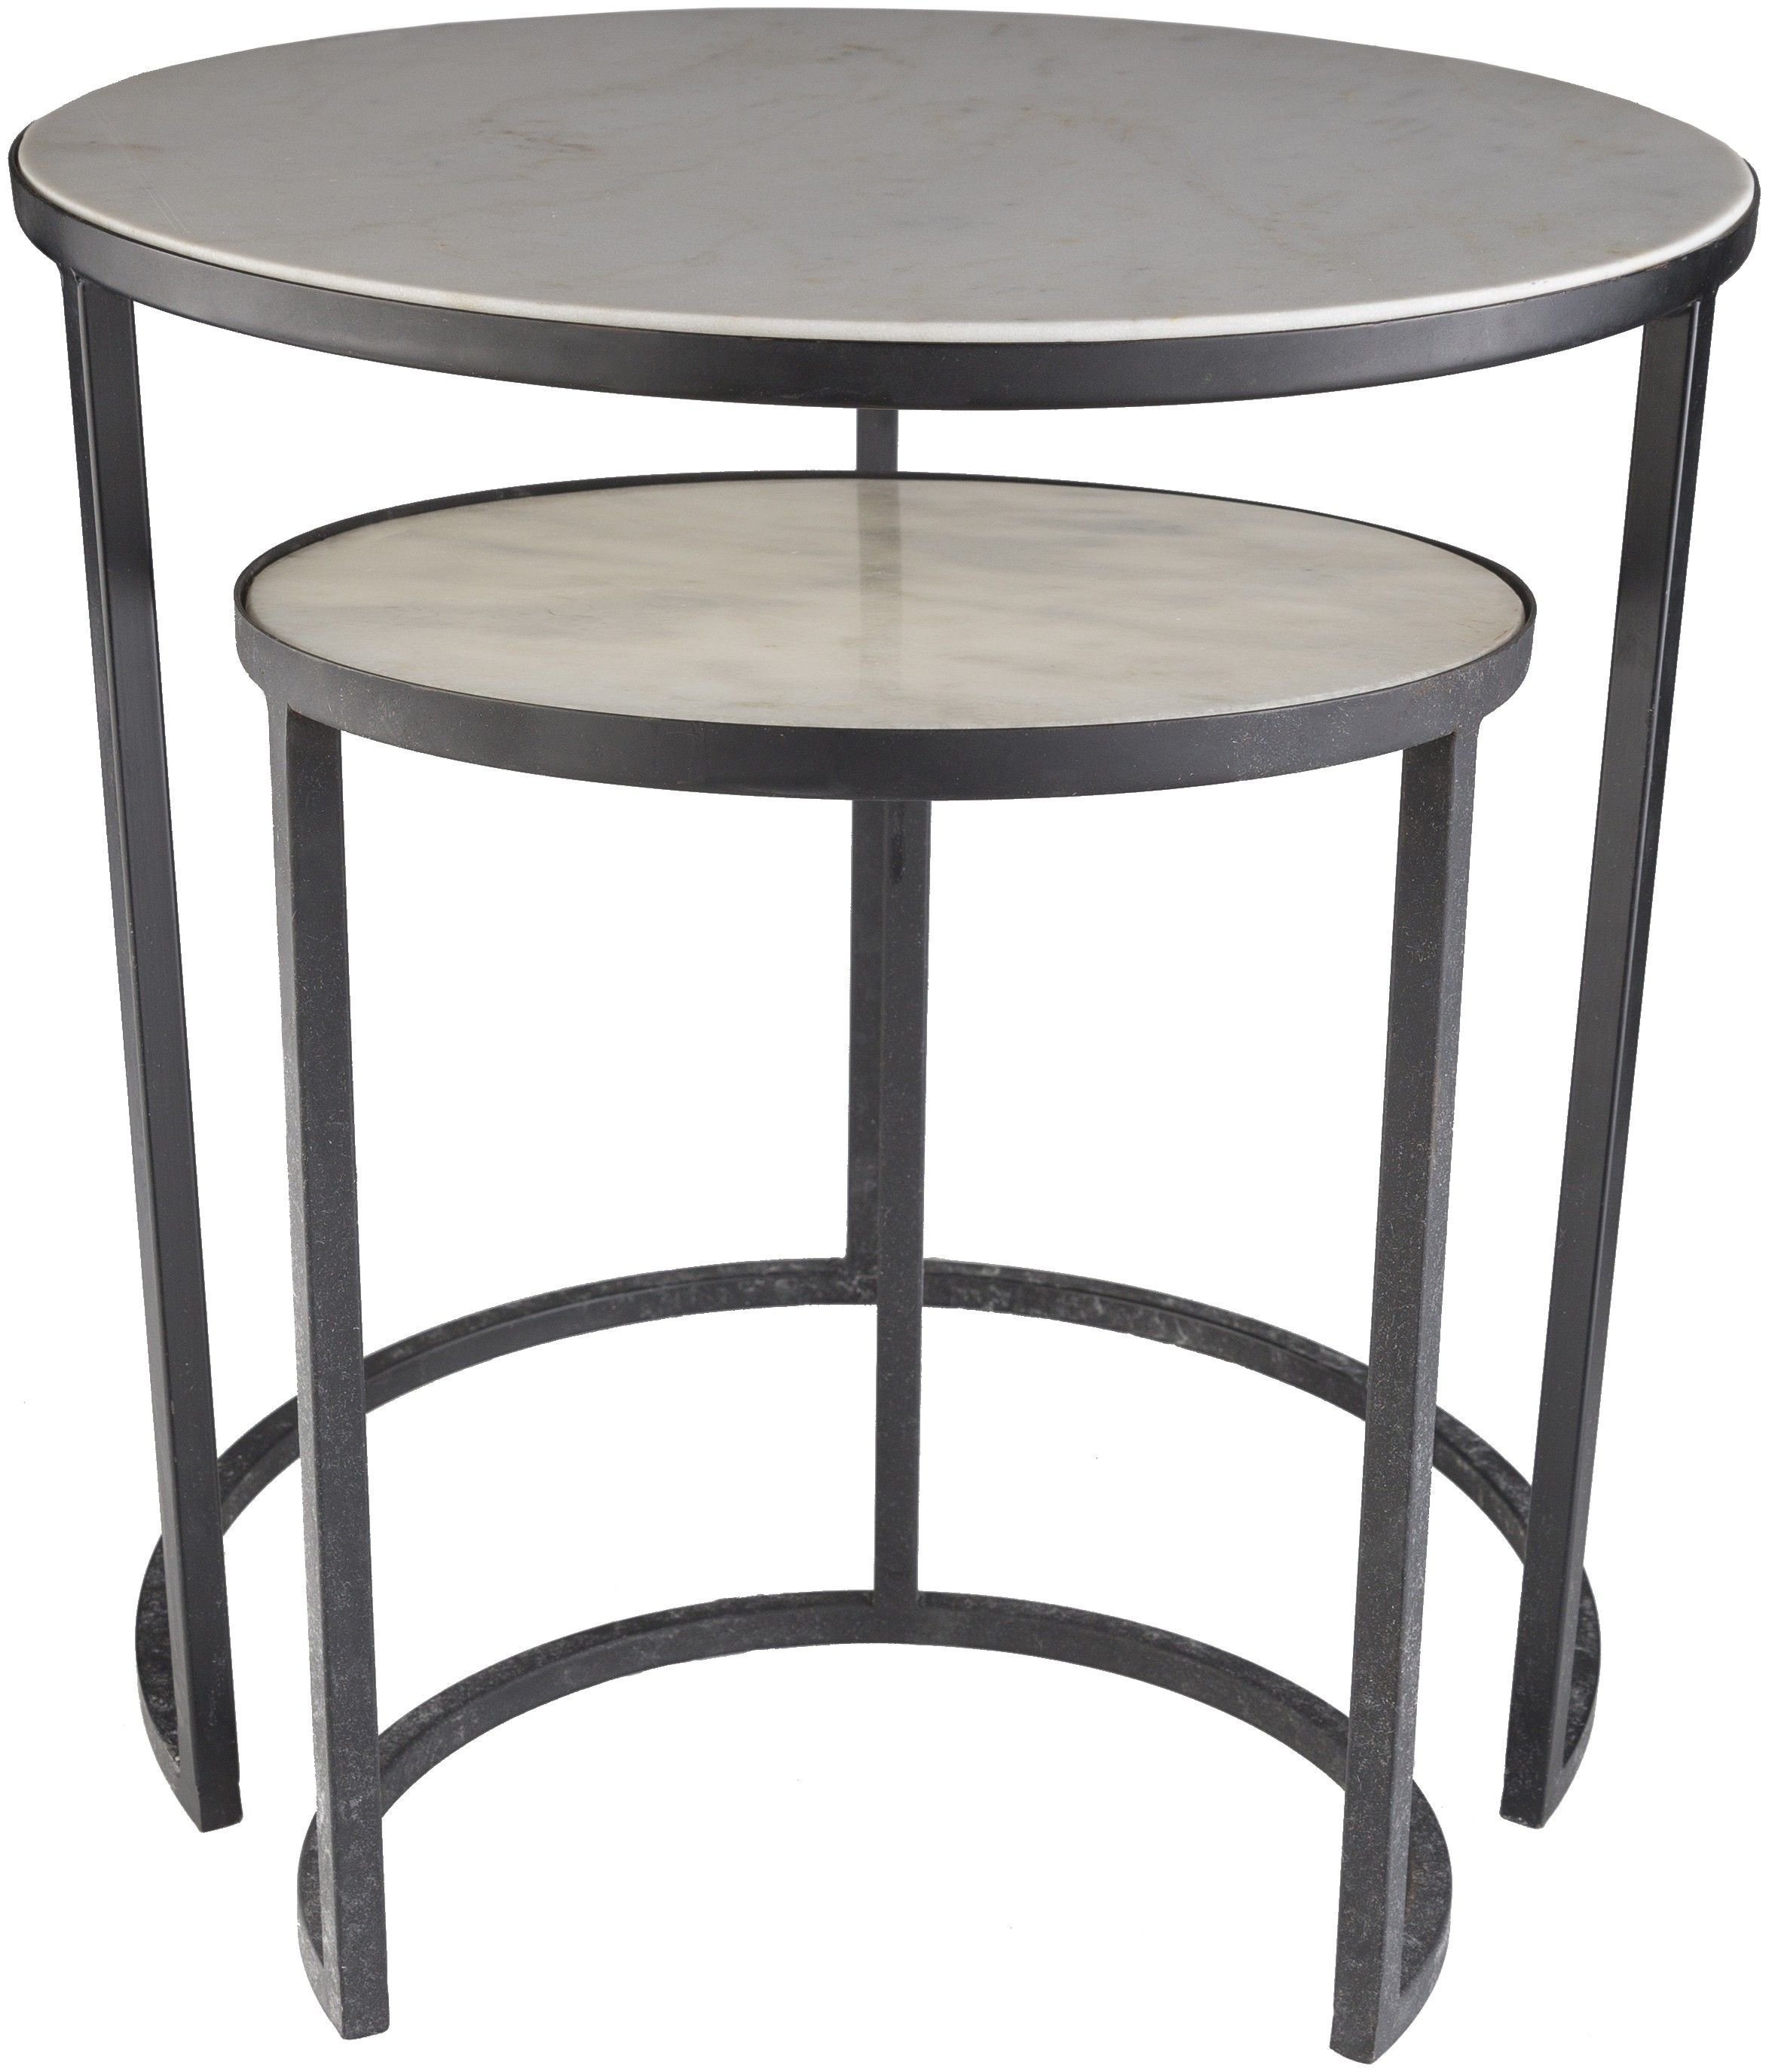 lulu clea nesting tables iron marbles and industrial knurl accent set two hall console table corner side ikea office desk furniture small wood end wooden threshold bar nest coffee